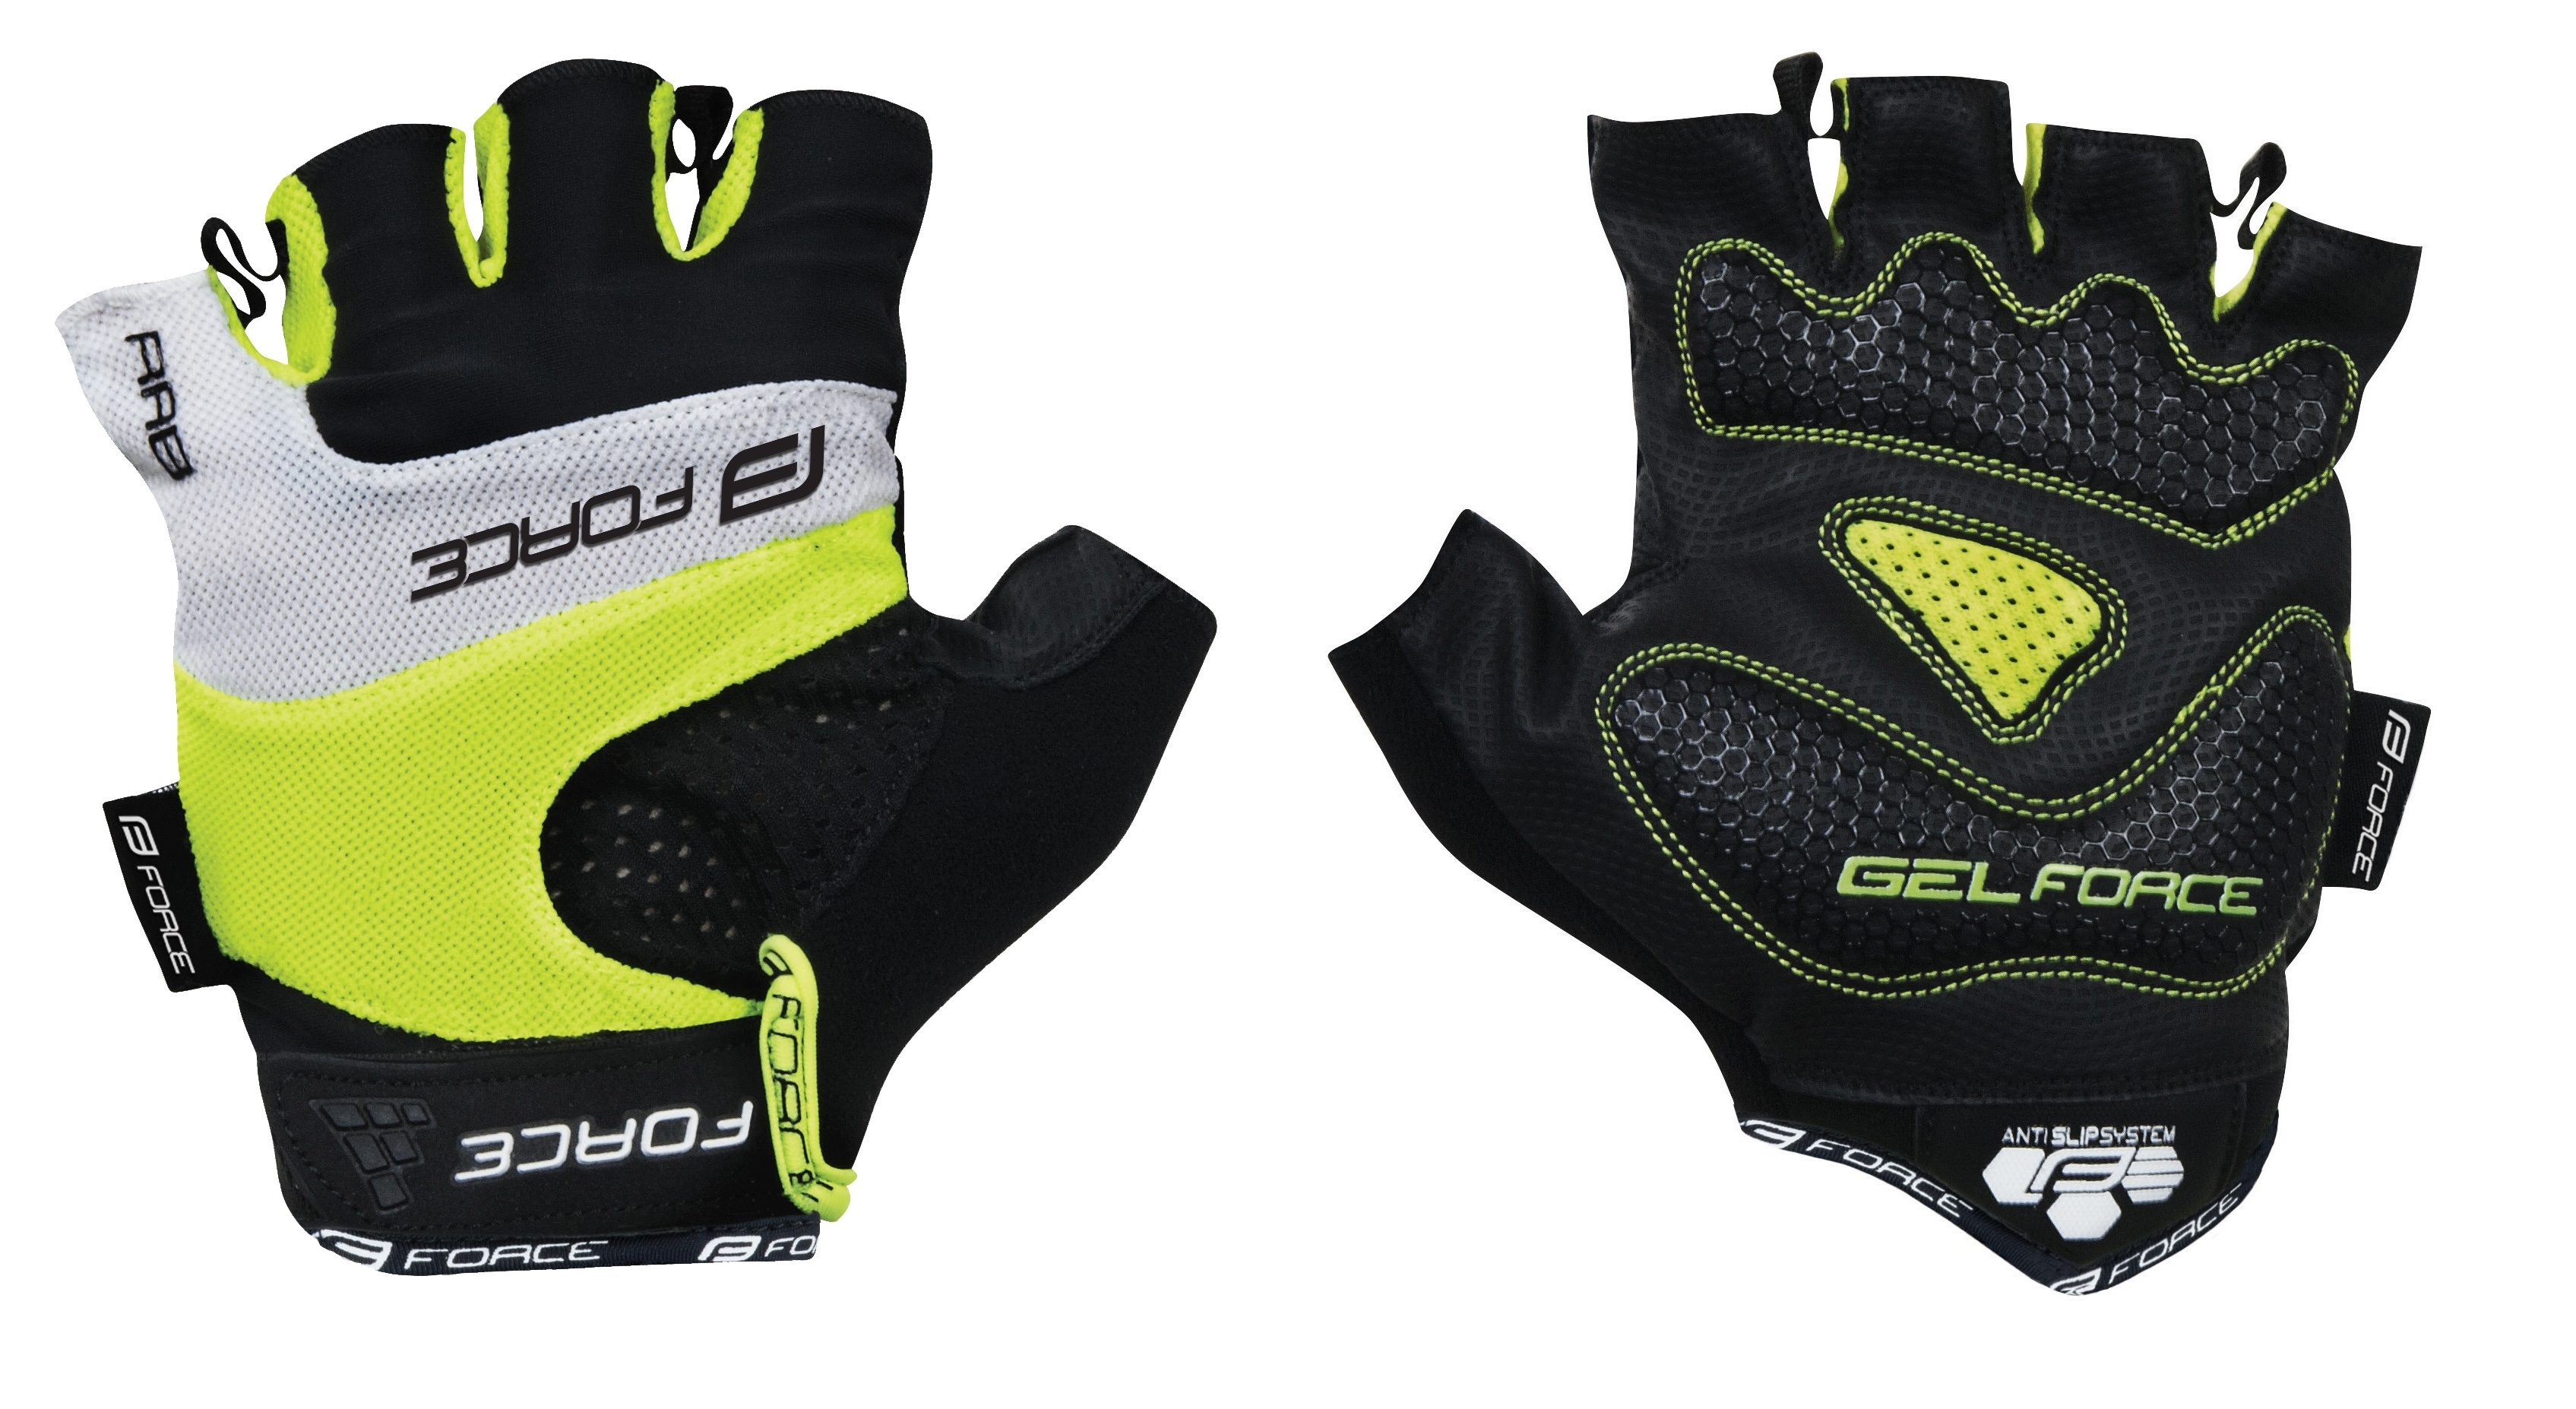 rukavice FORCE RAB gel, fluo L